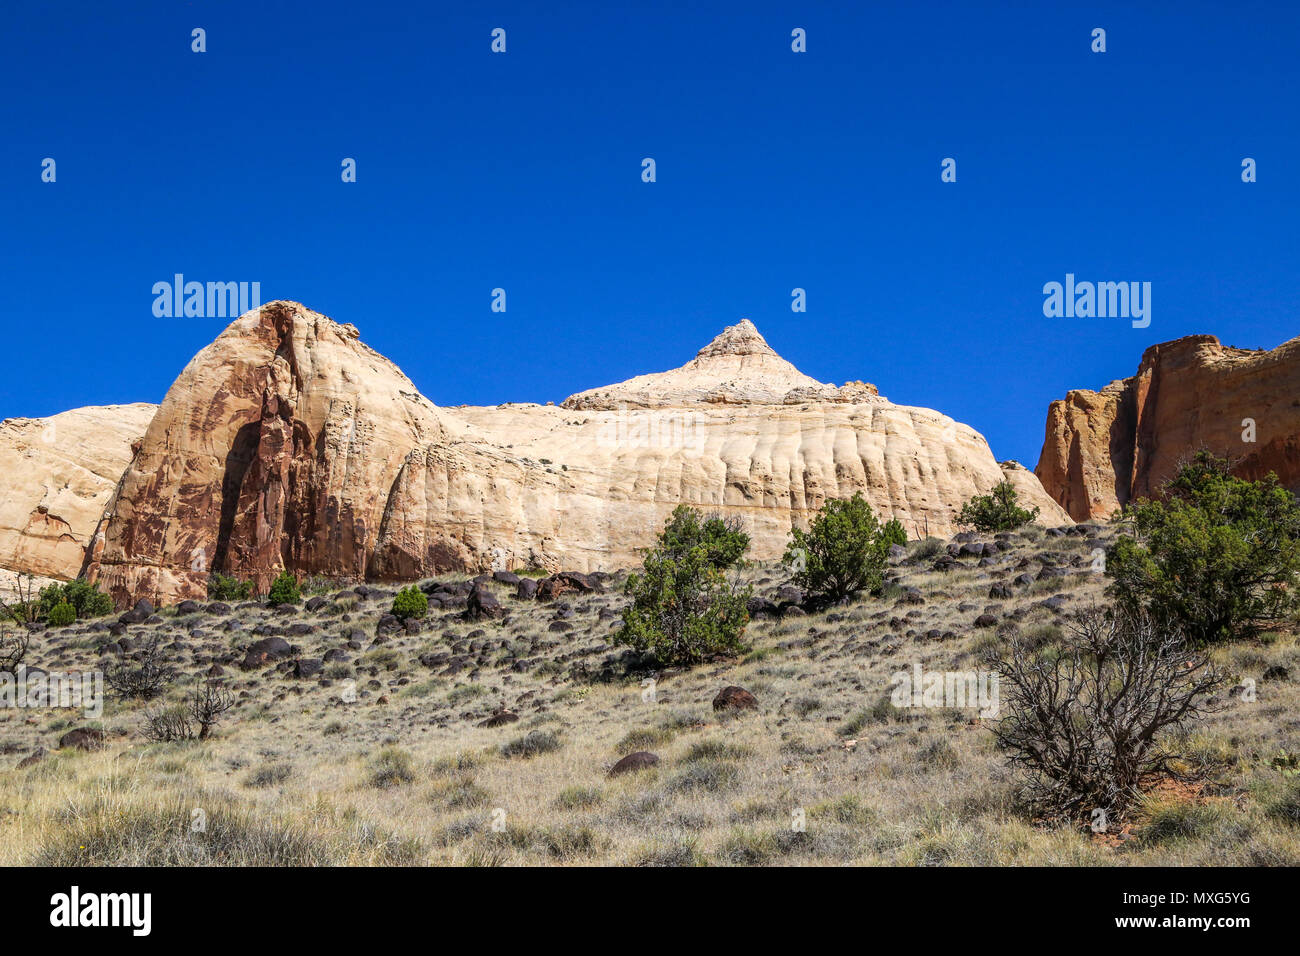 A slickrock dome by the Hickman Bridge Hiking Trail in Capitol Reef National Park, Utah - Stock Image